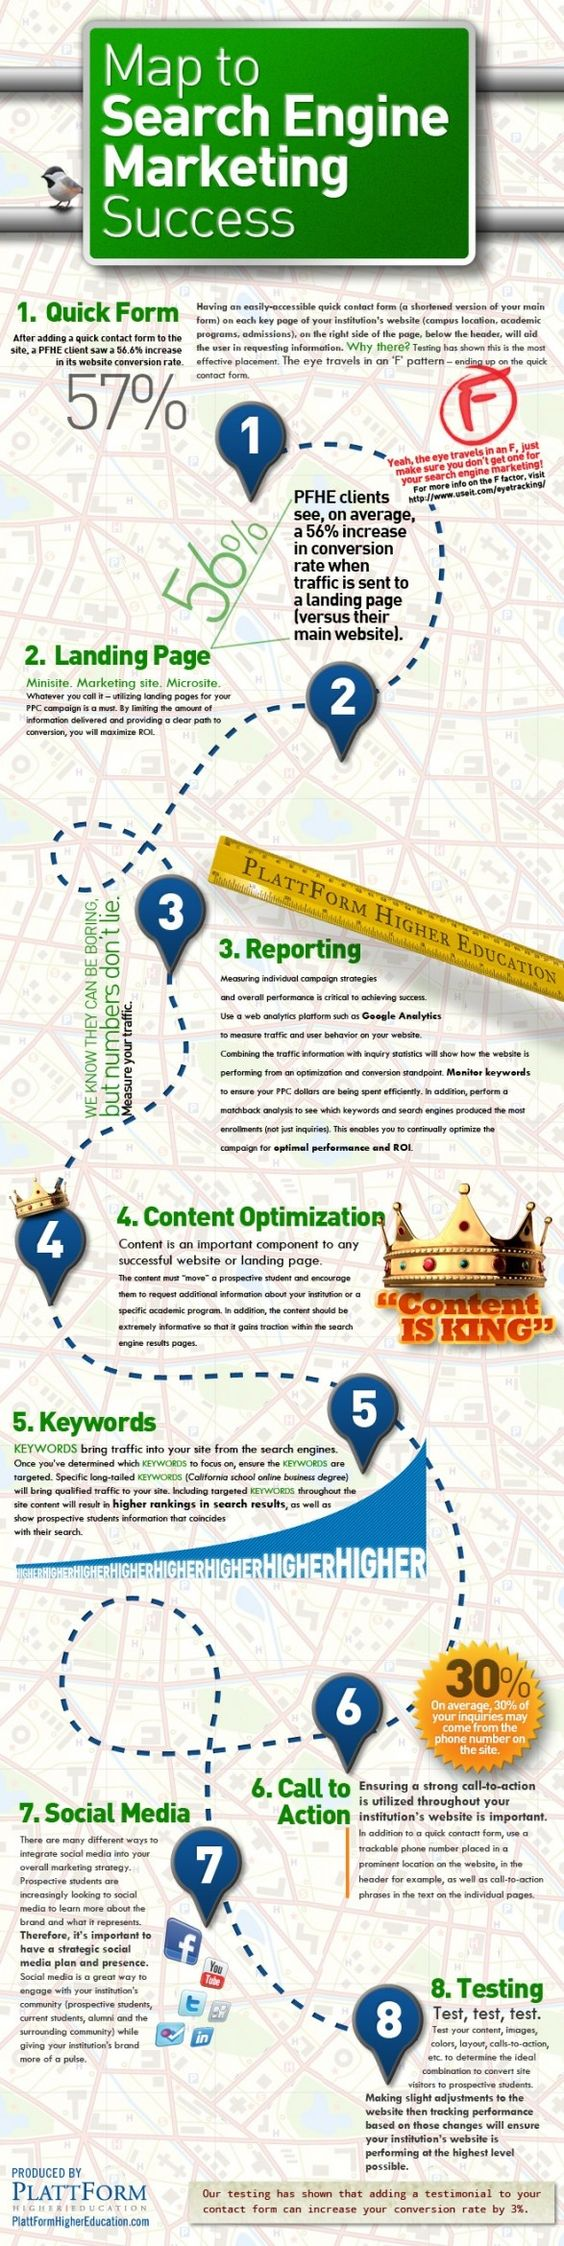 Map to Search Engine Marketing Success